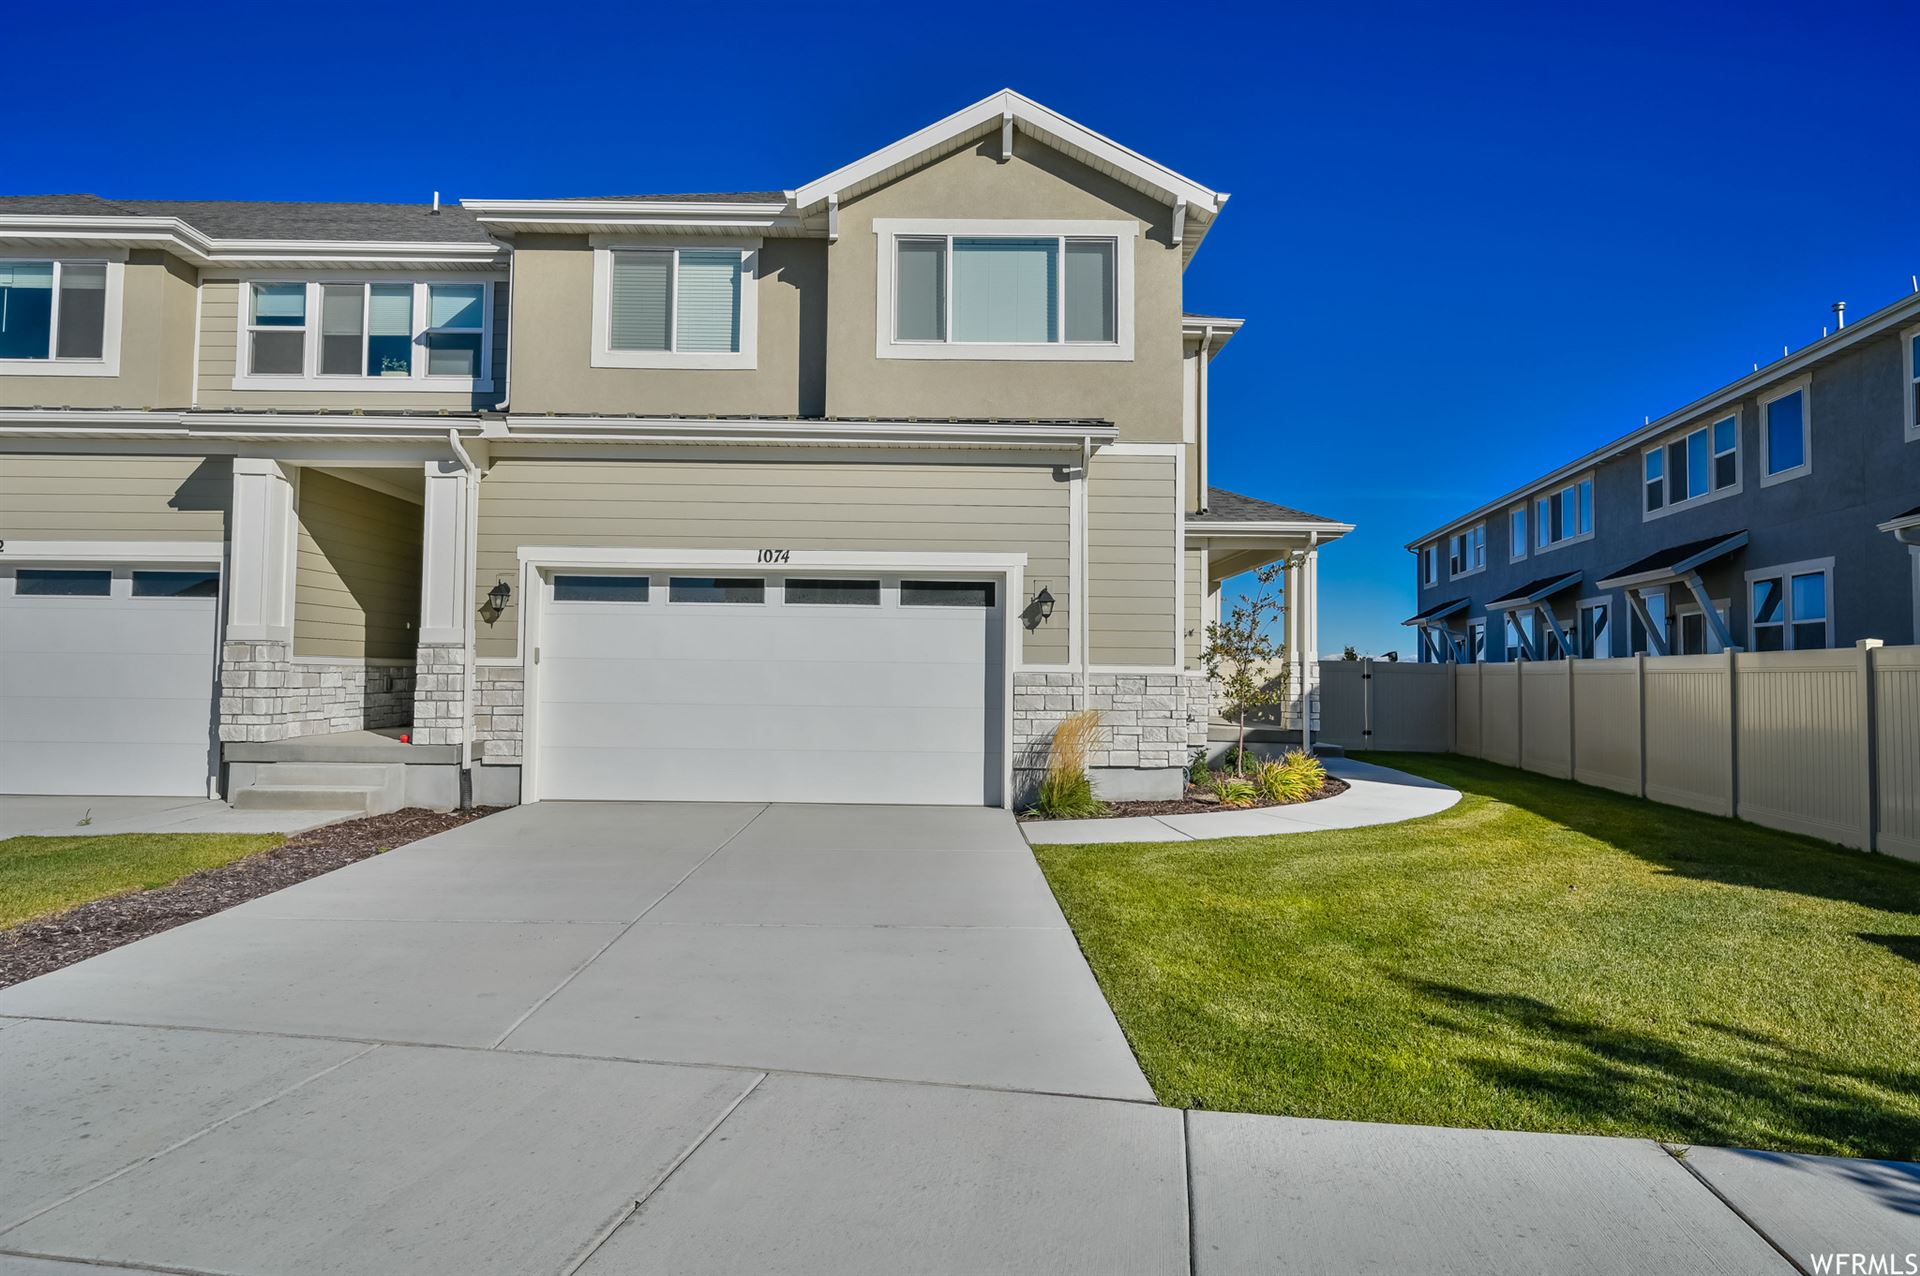 Photo of 1074 W CHIMNEY PASS DR, Bluffdale, UT 84065 (MLS # 1775097)